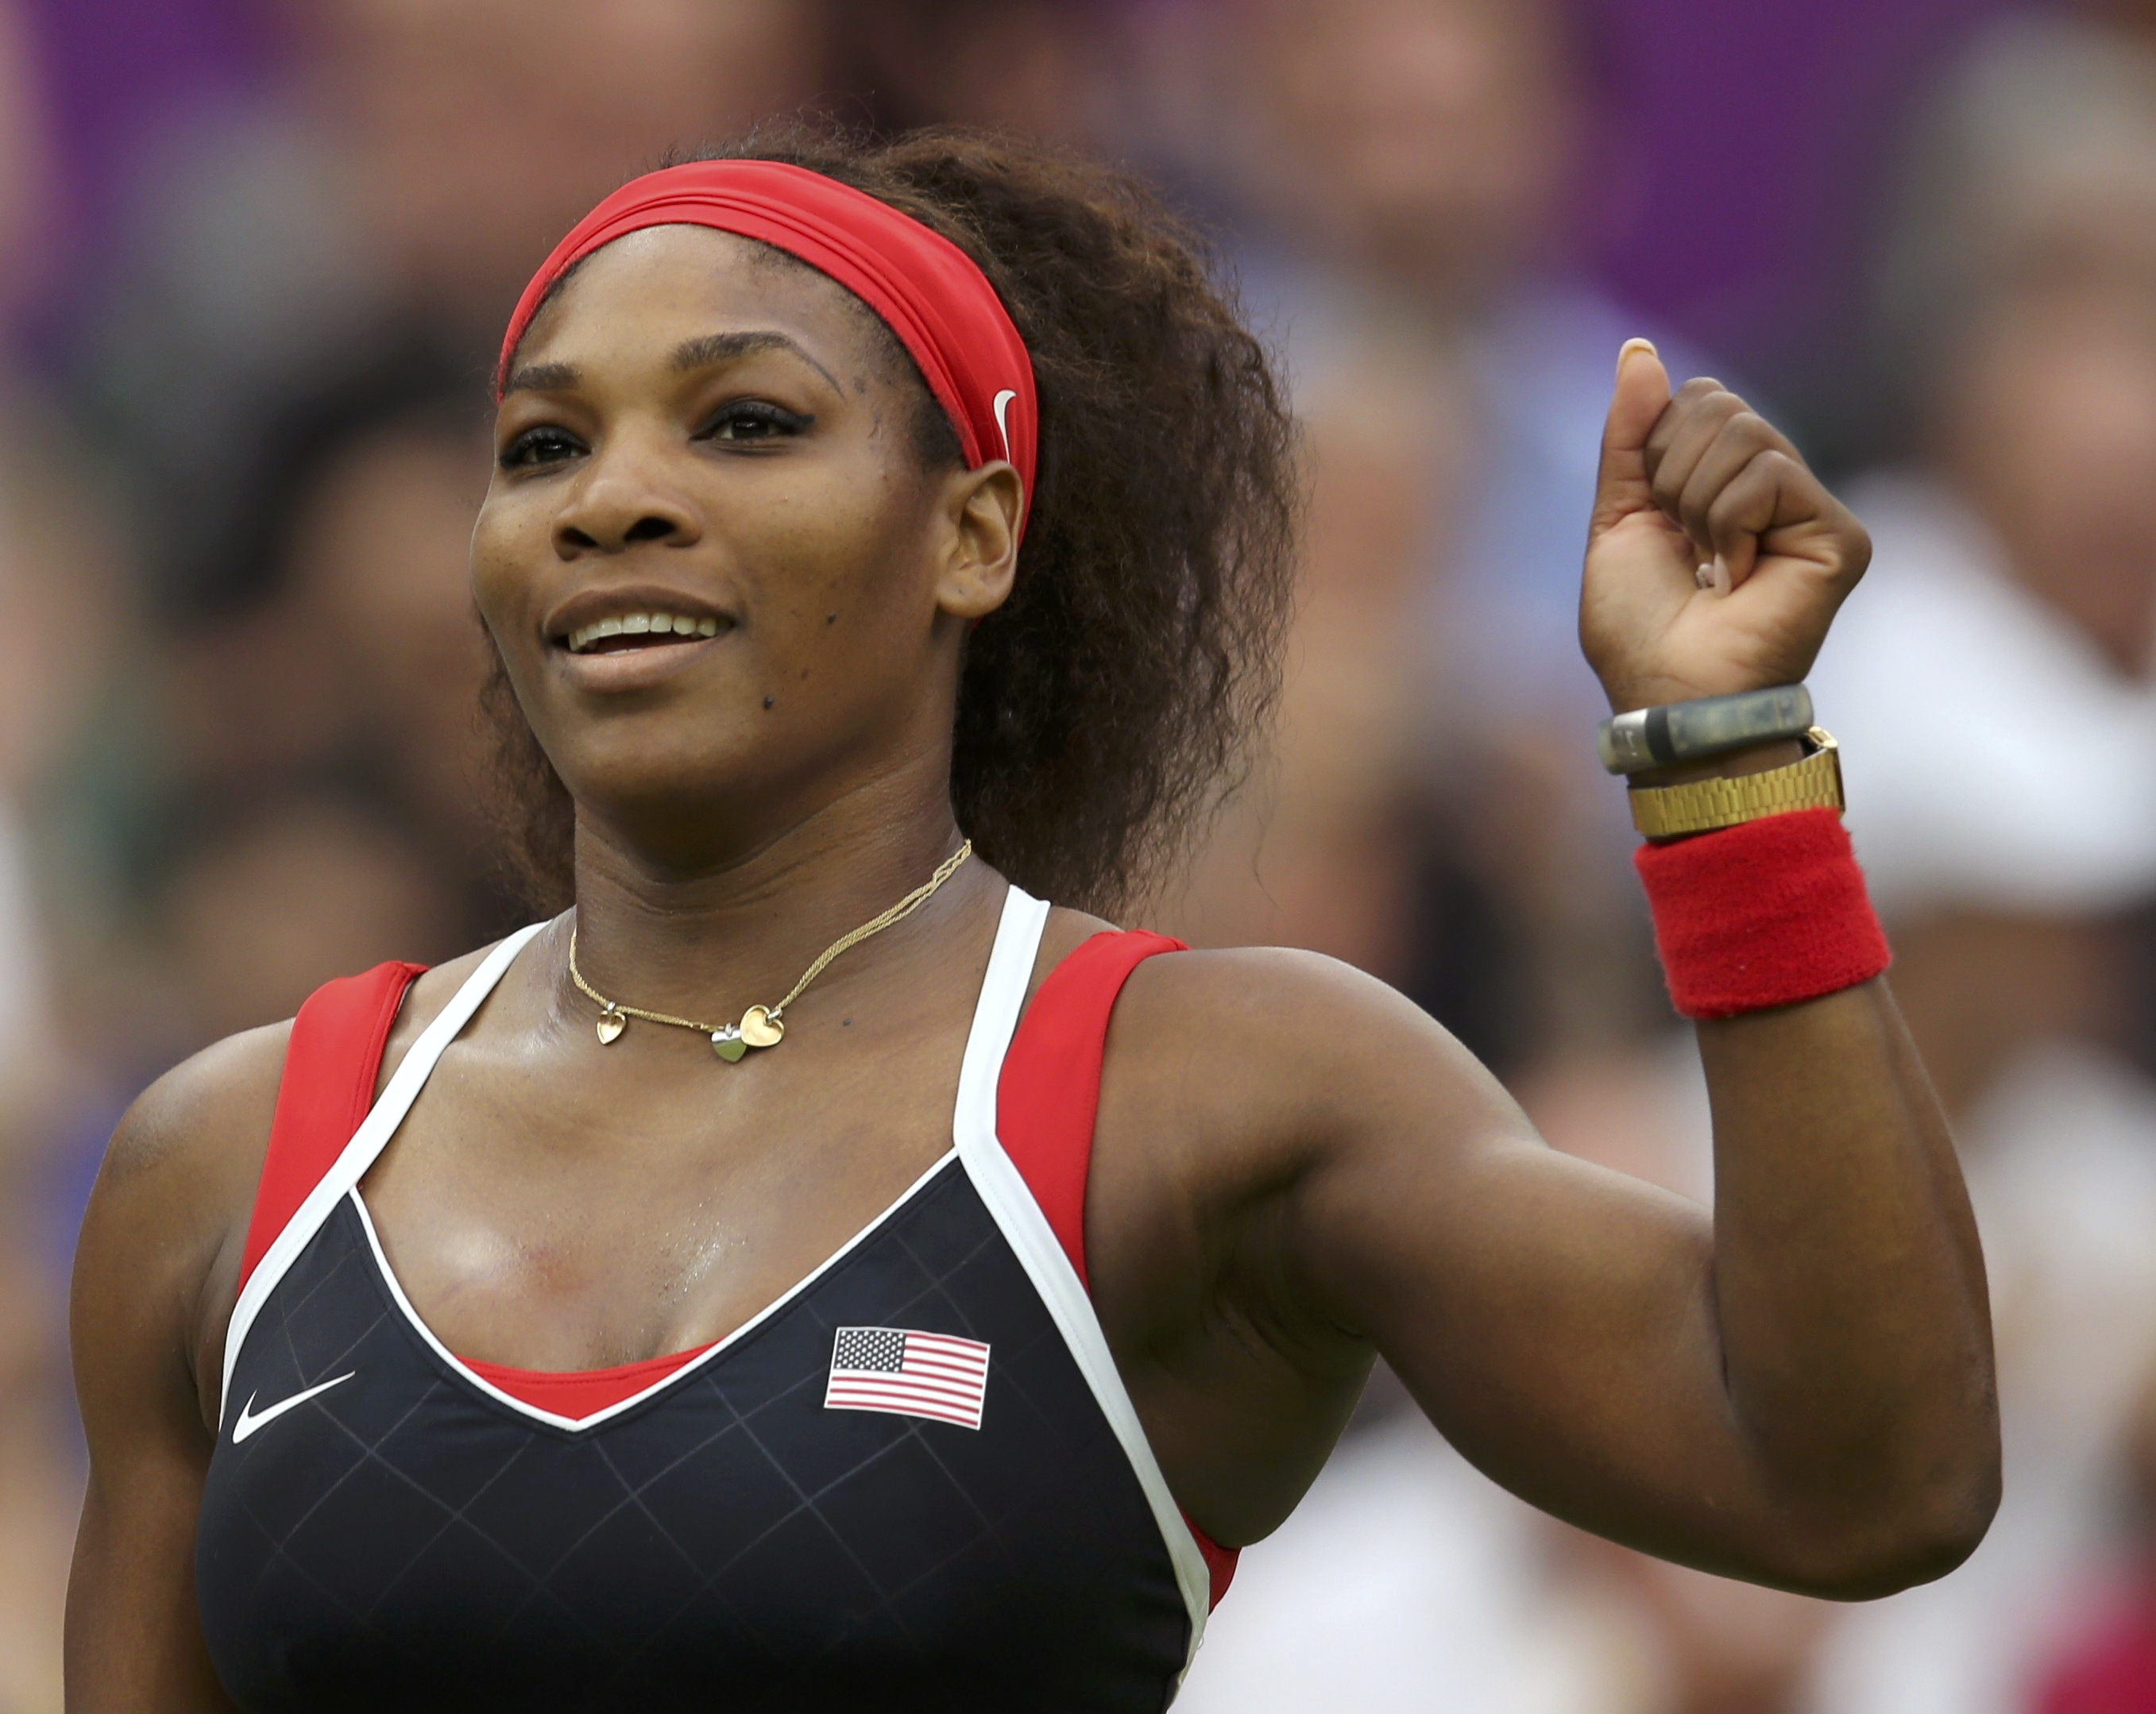 Serena Williams of the US celebrates after defeating Russia's Vera Zvonareva in their women's singles tennis match at the All England Lawn Tennis Club during the London 2012 Olympic Games August 1, 2012. Photo: Reuters/ File